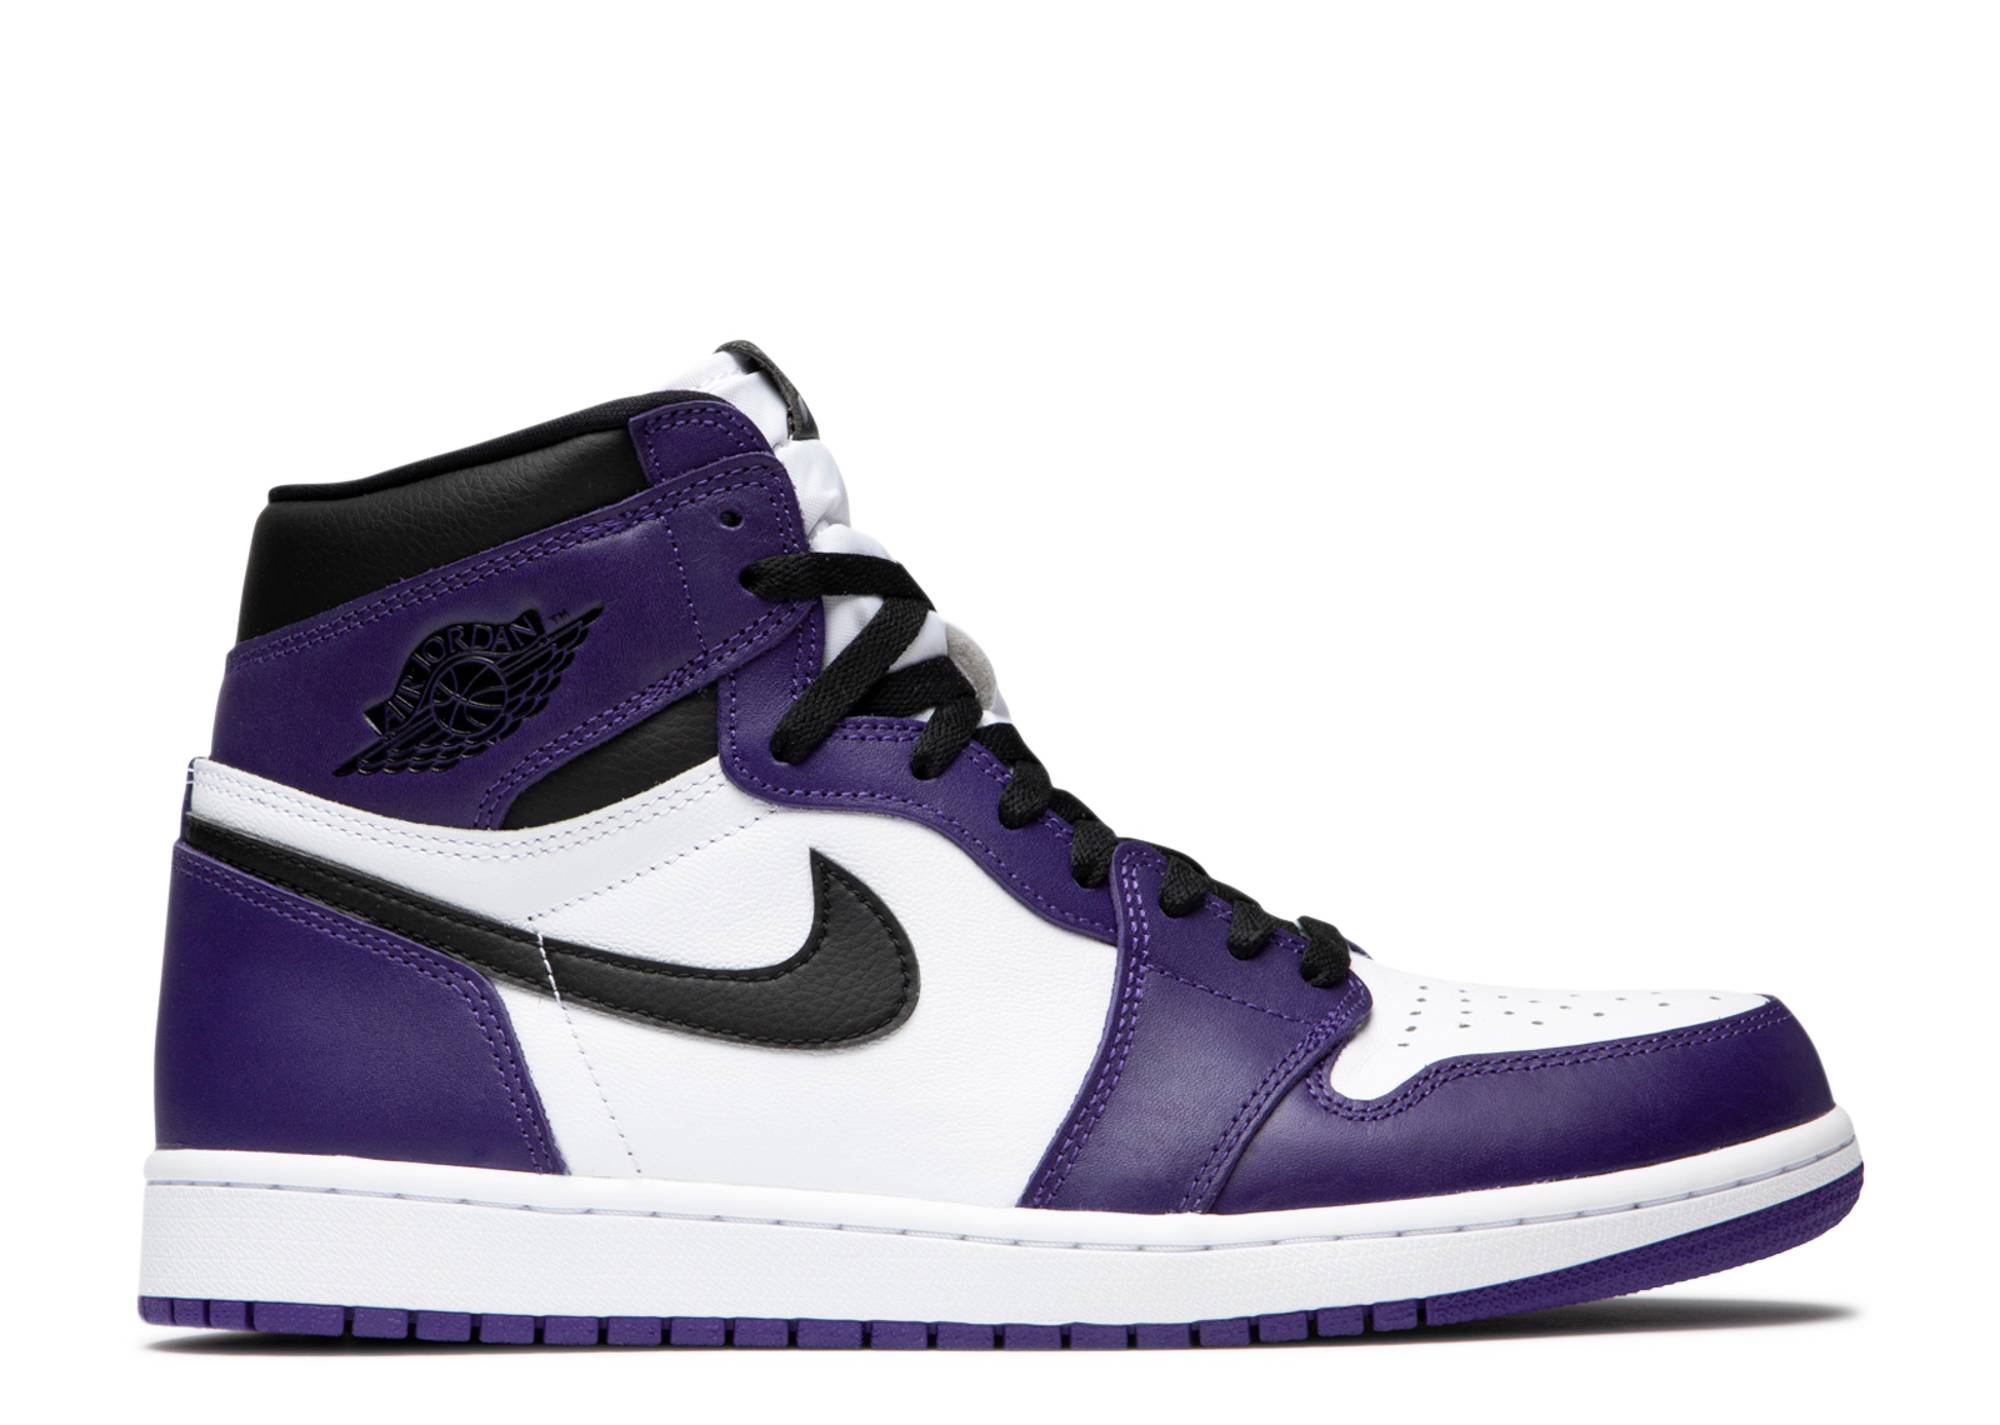 Air Jordan 1 High OG 'Court Purple